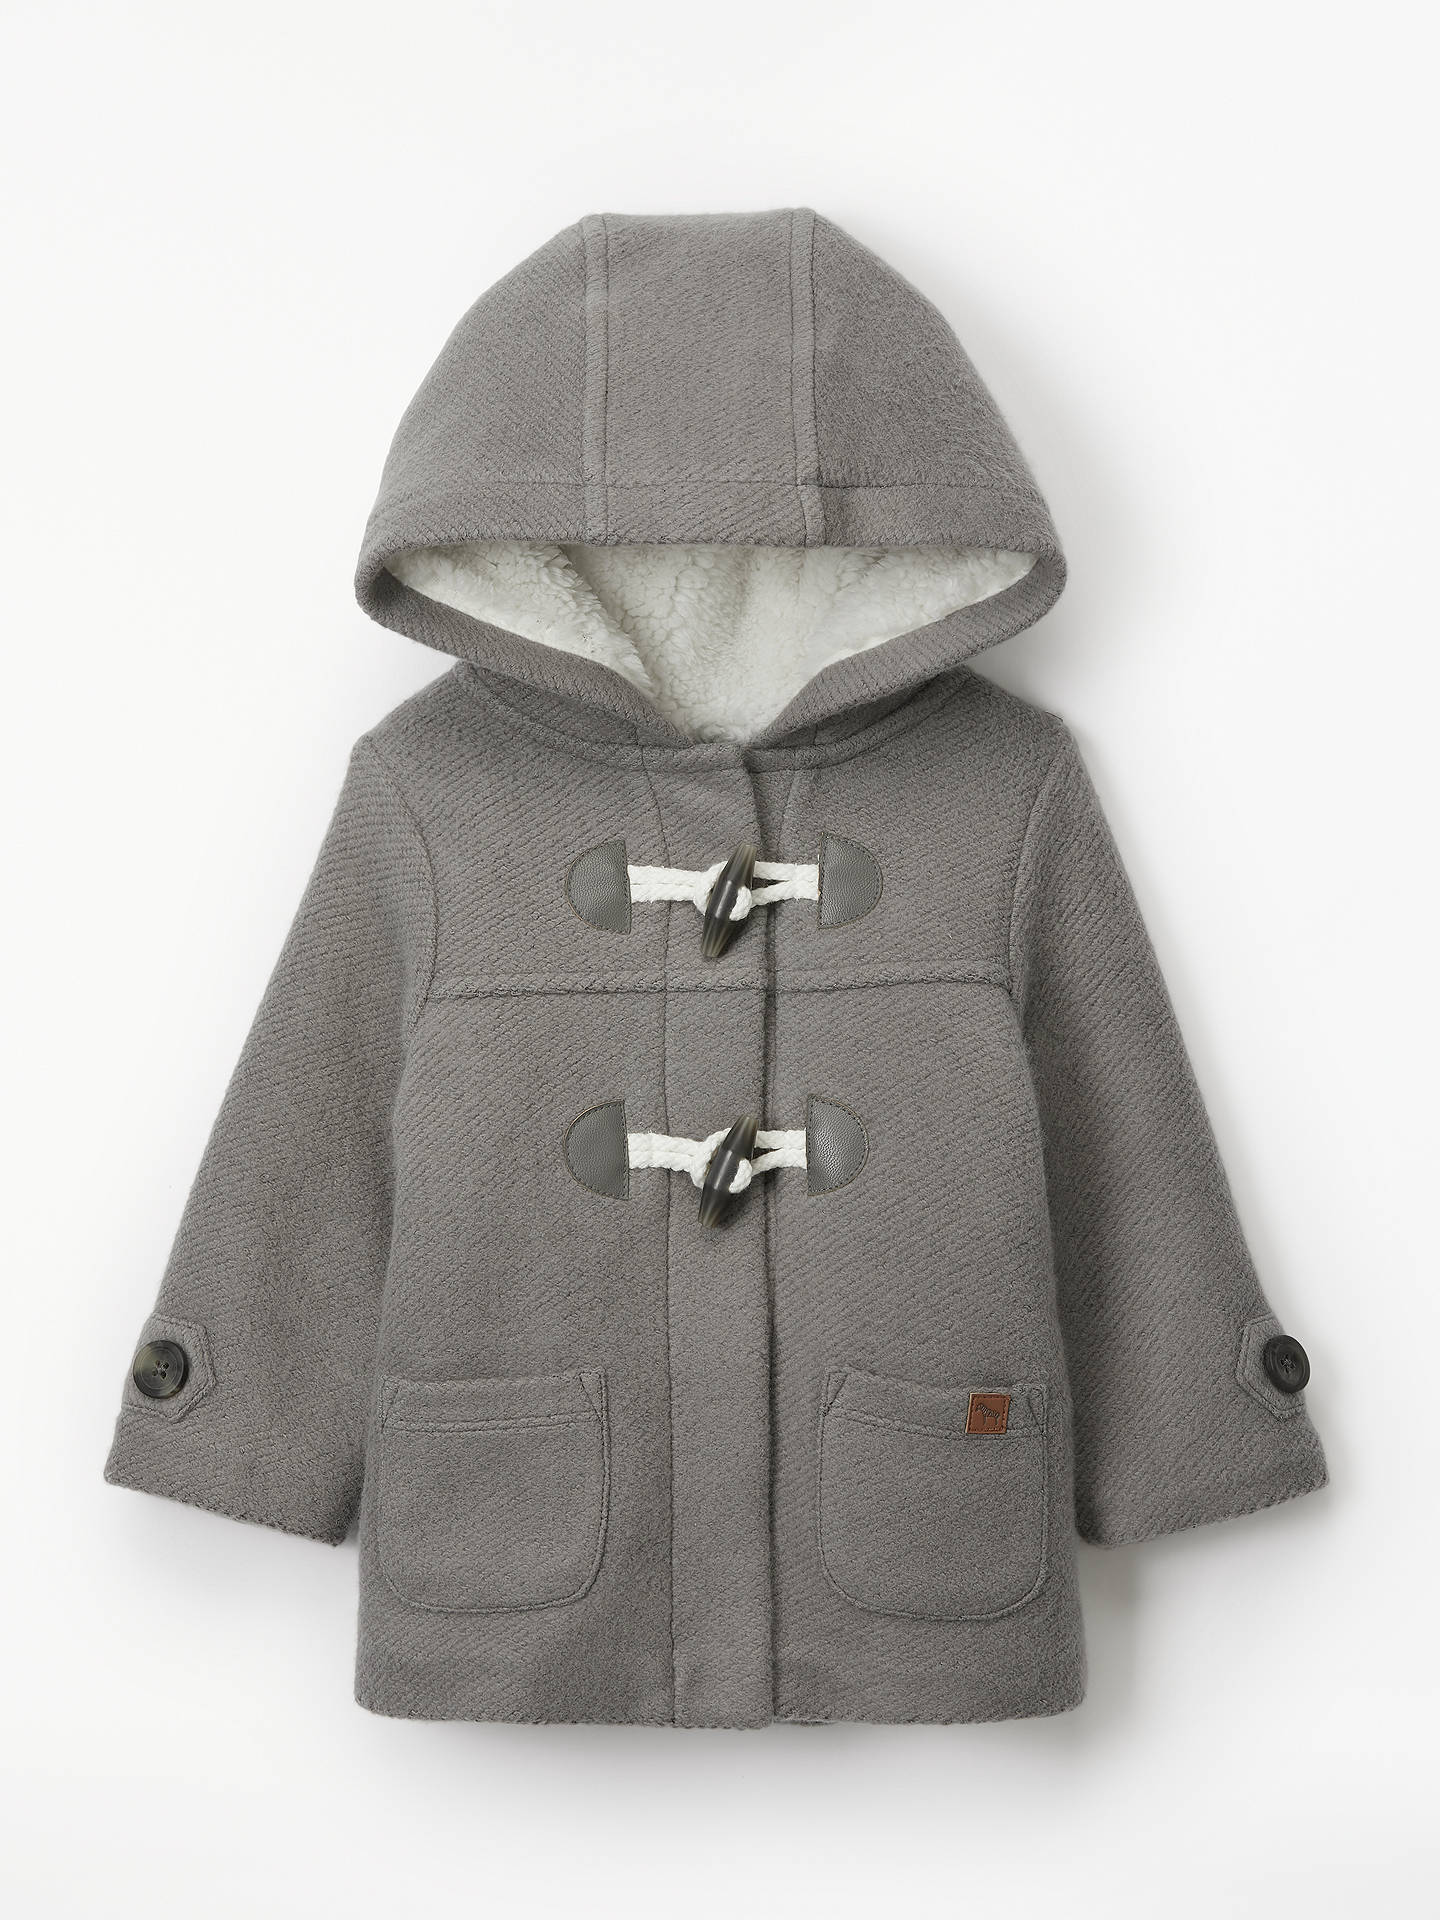 BuyJohn Lewis & Partners Baby Duffle Coat, Charcoal, 3-6 months Online at johnlewis.com